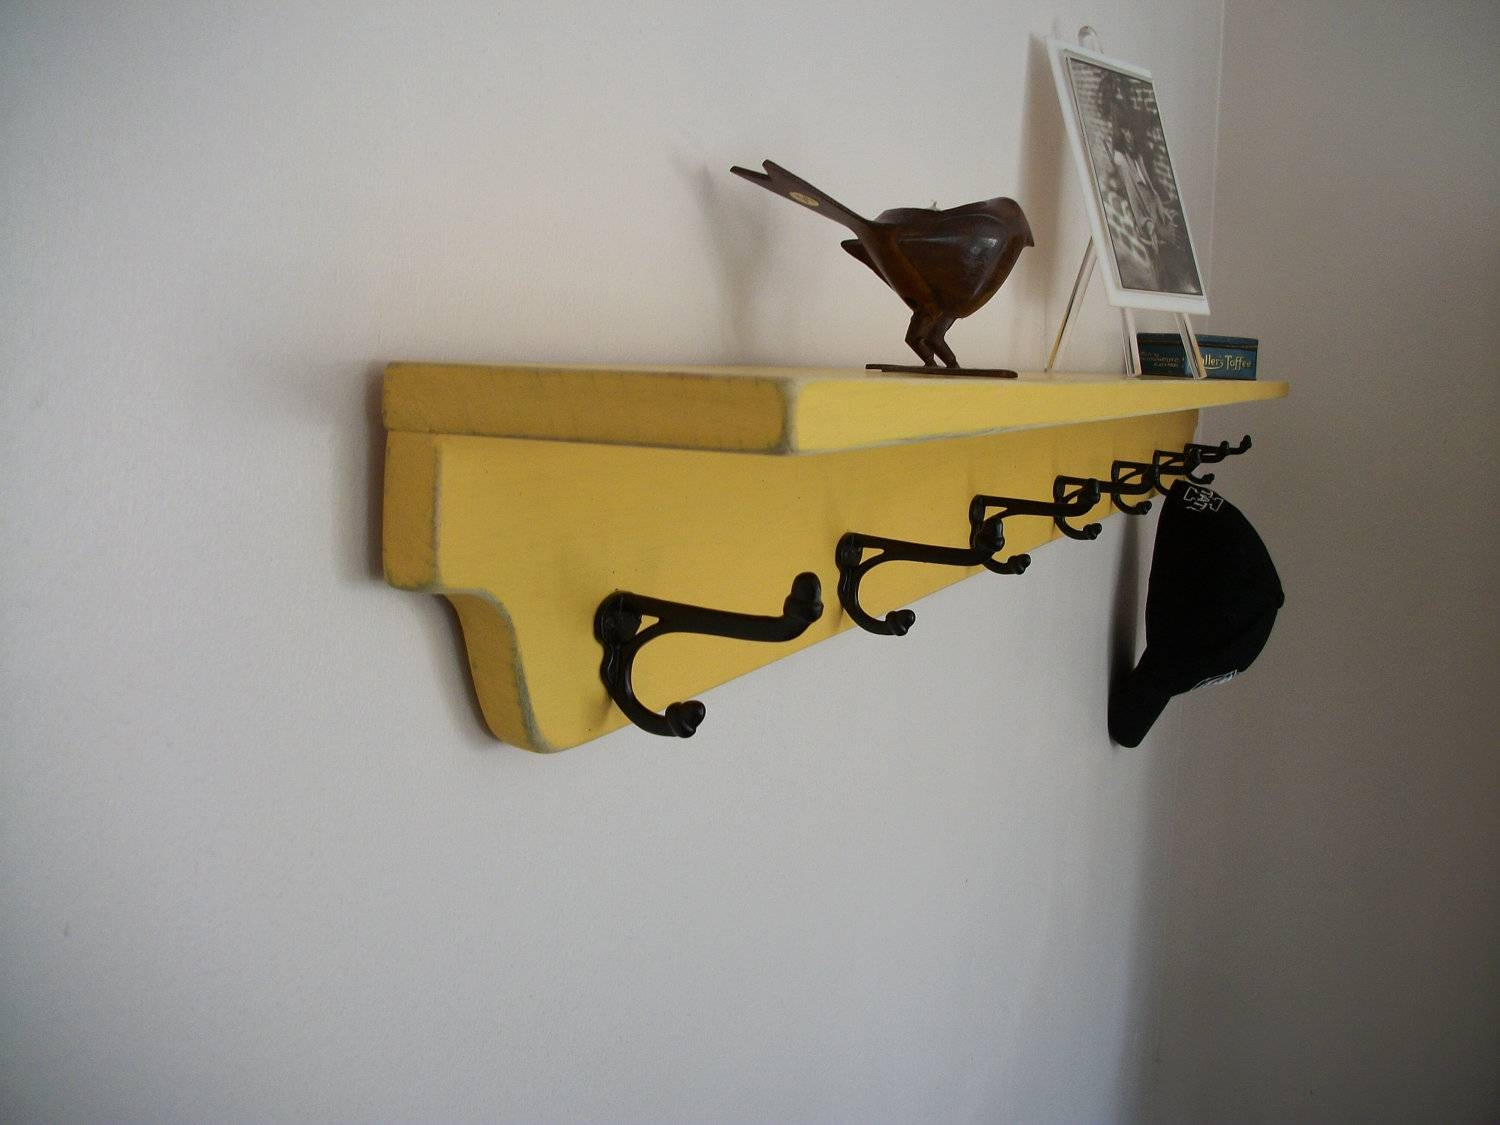 View Gallery of Wall Art Coat Hooks (Showing 8 of 20 Photos)